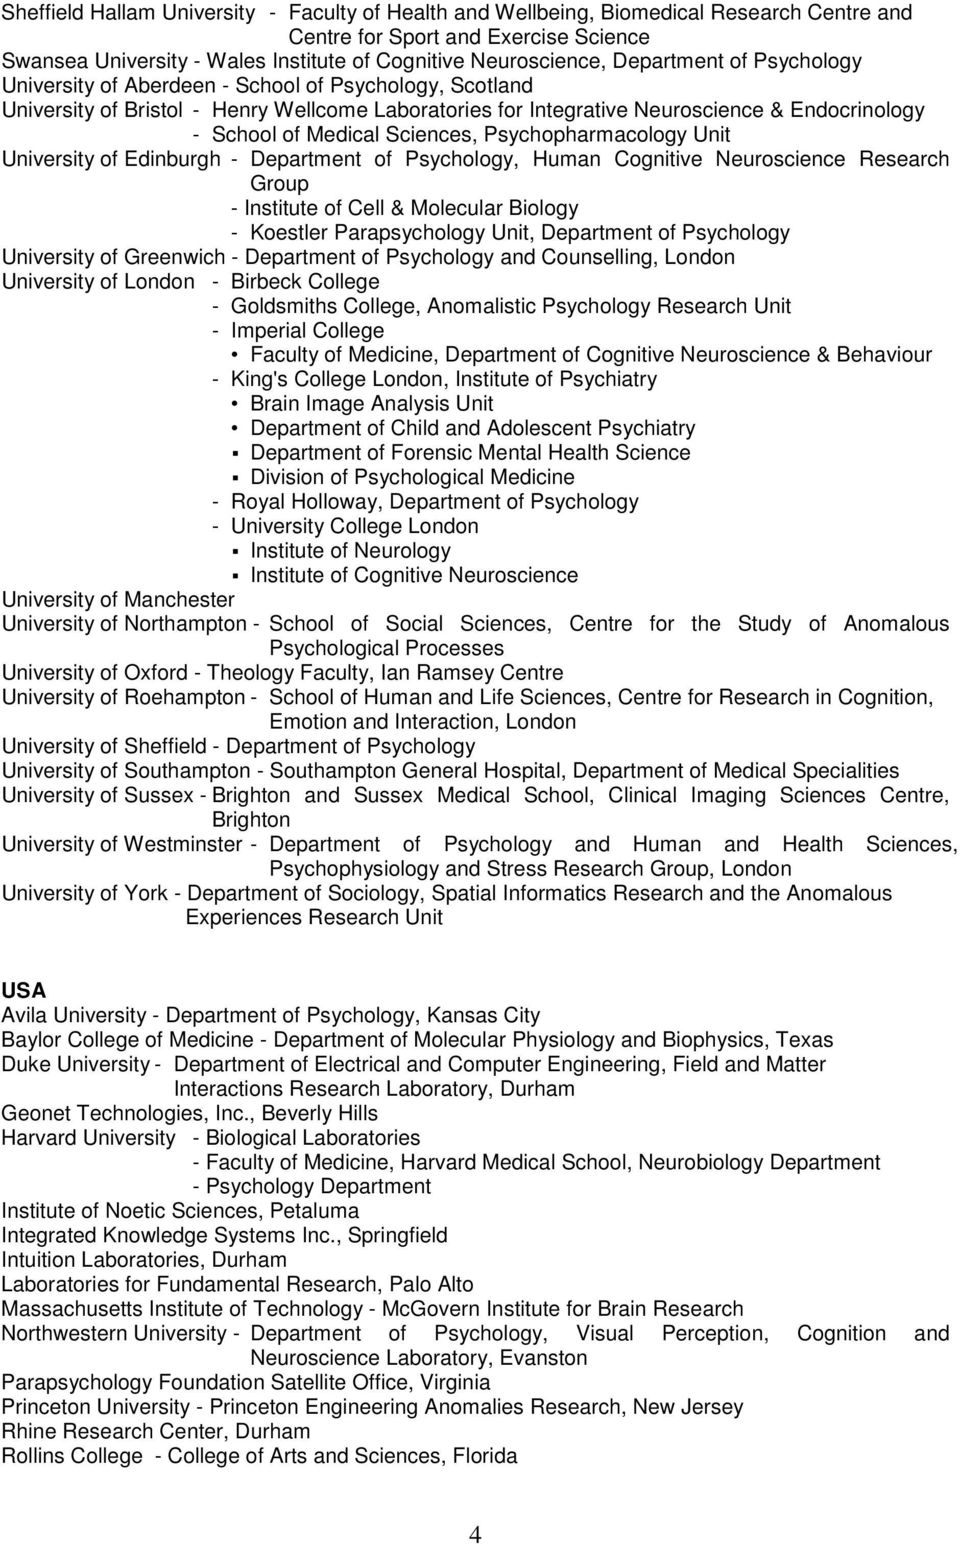 Sciences, Psychopharmacology Unit University of Edinburgh - Department of Psychology, Human Cognitive Neuroscience Research Group - Institute of Cell & Molecular Biology - Koestler Parapsychology